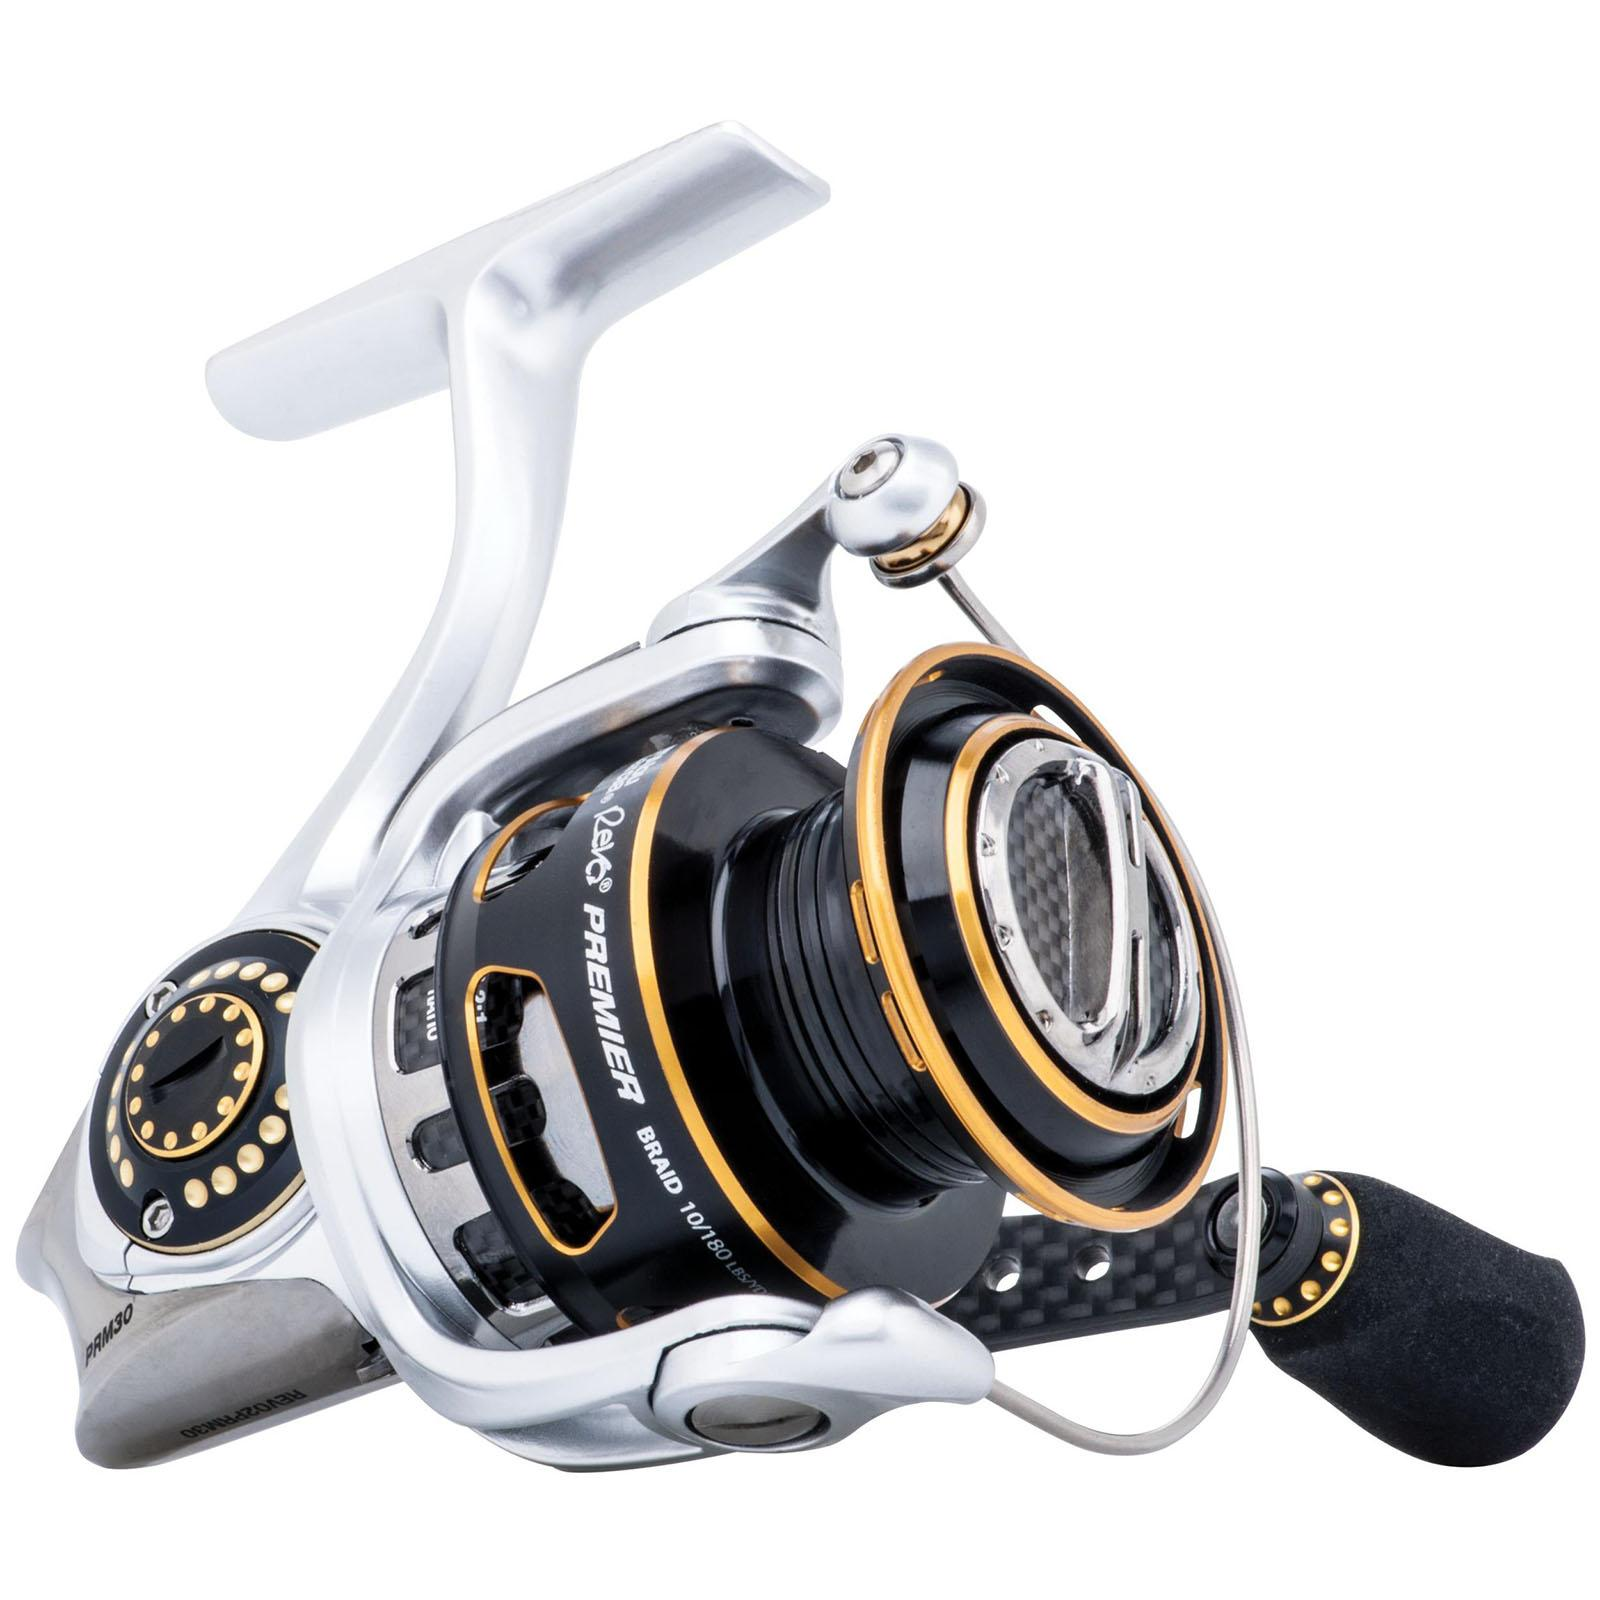 Abu Garcia Revo Premier Side View